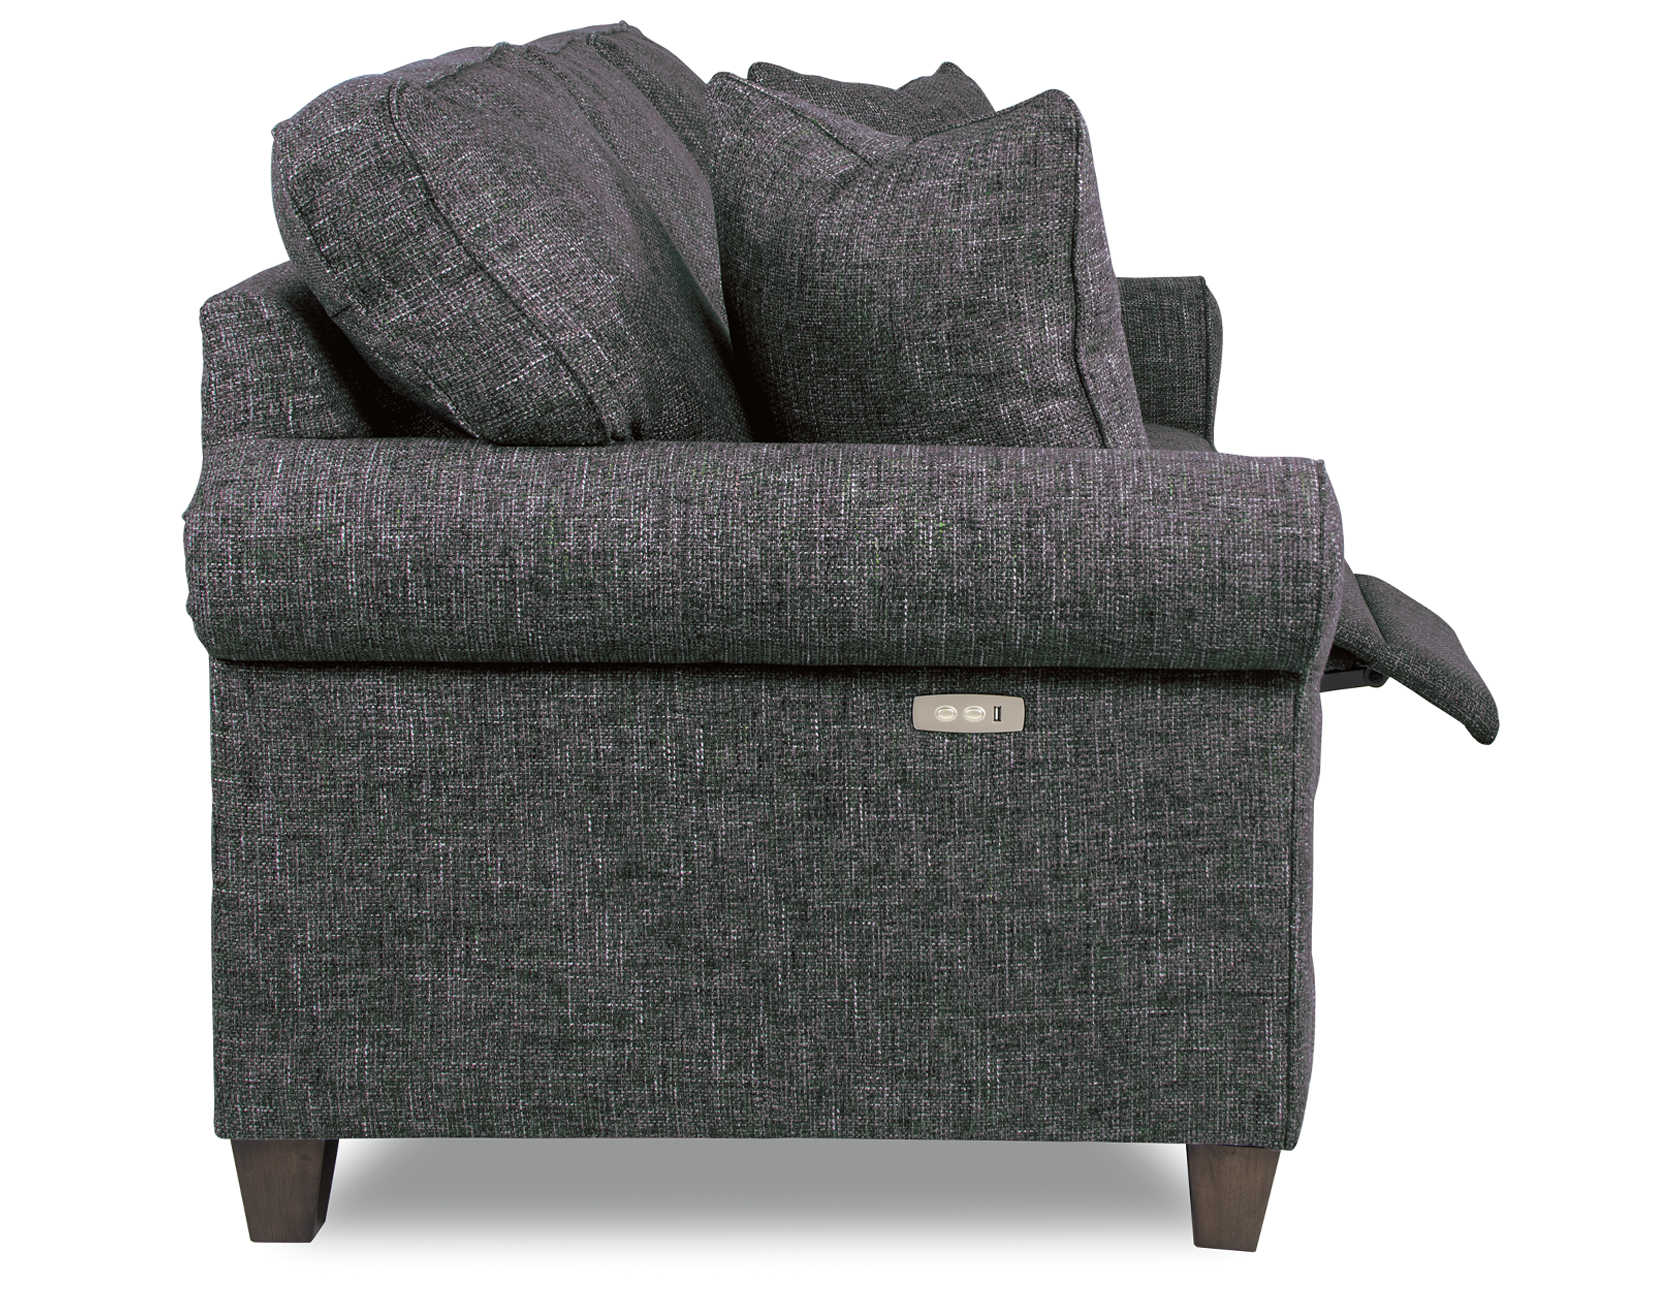 Makenna duo® Reclining Sofa side view